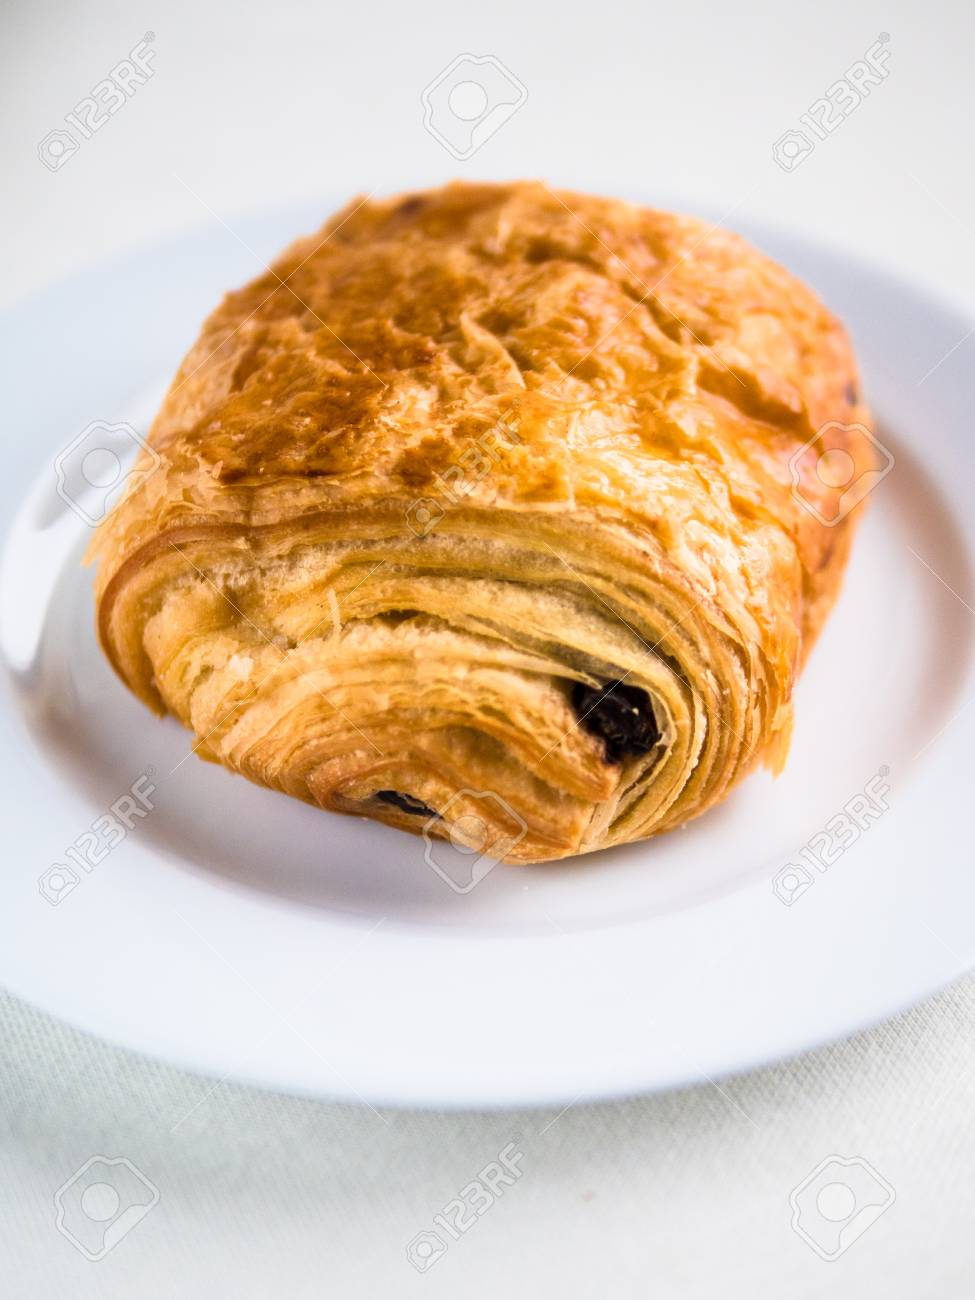 Vertical View Of A Single French Chocolate Croissant On A White